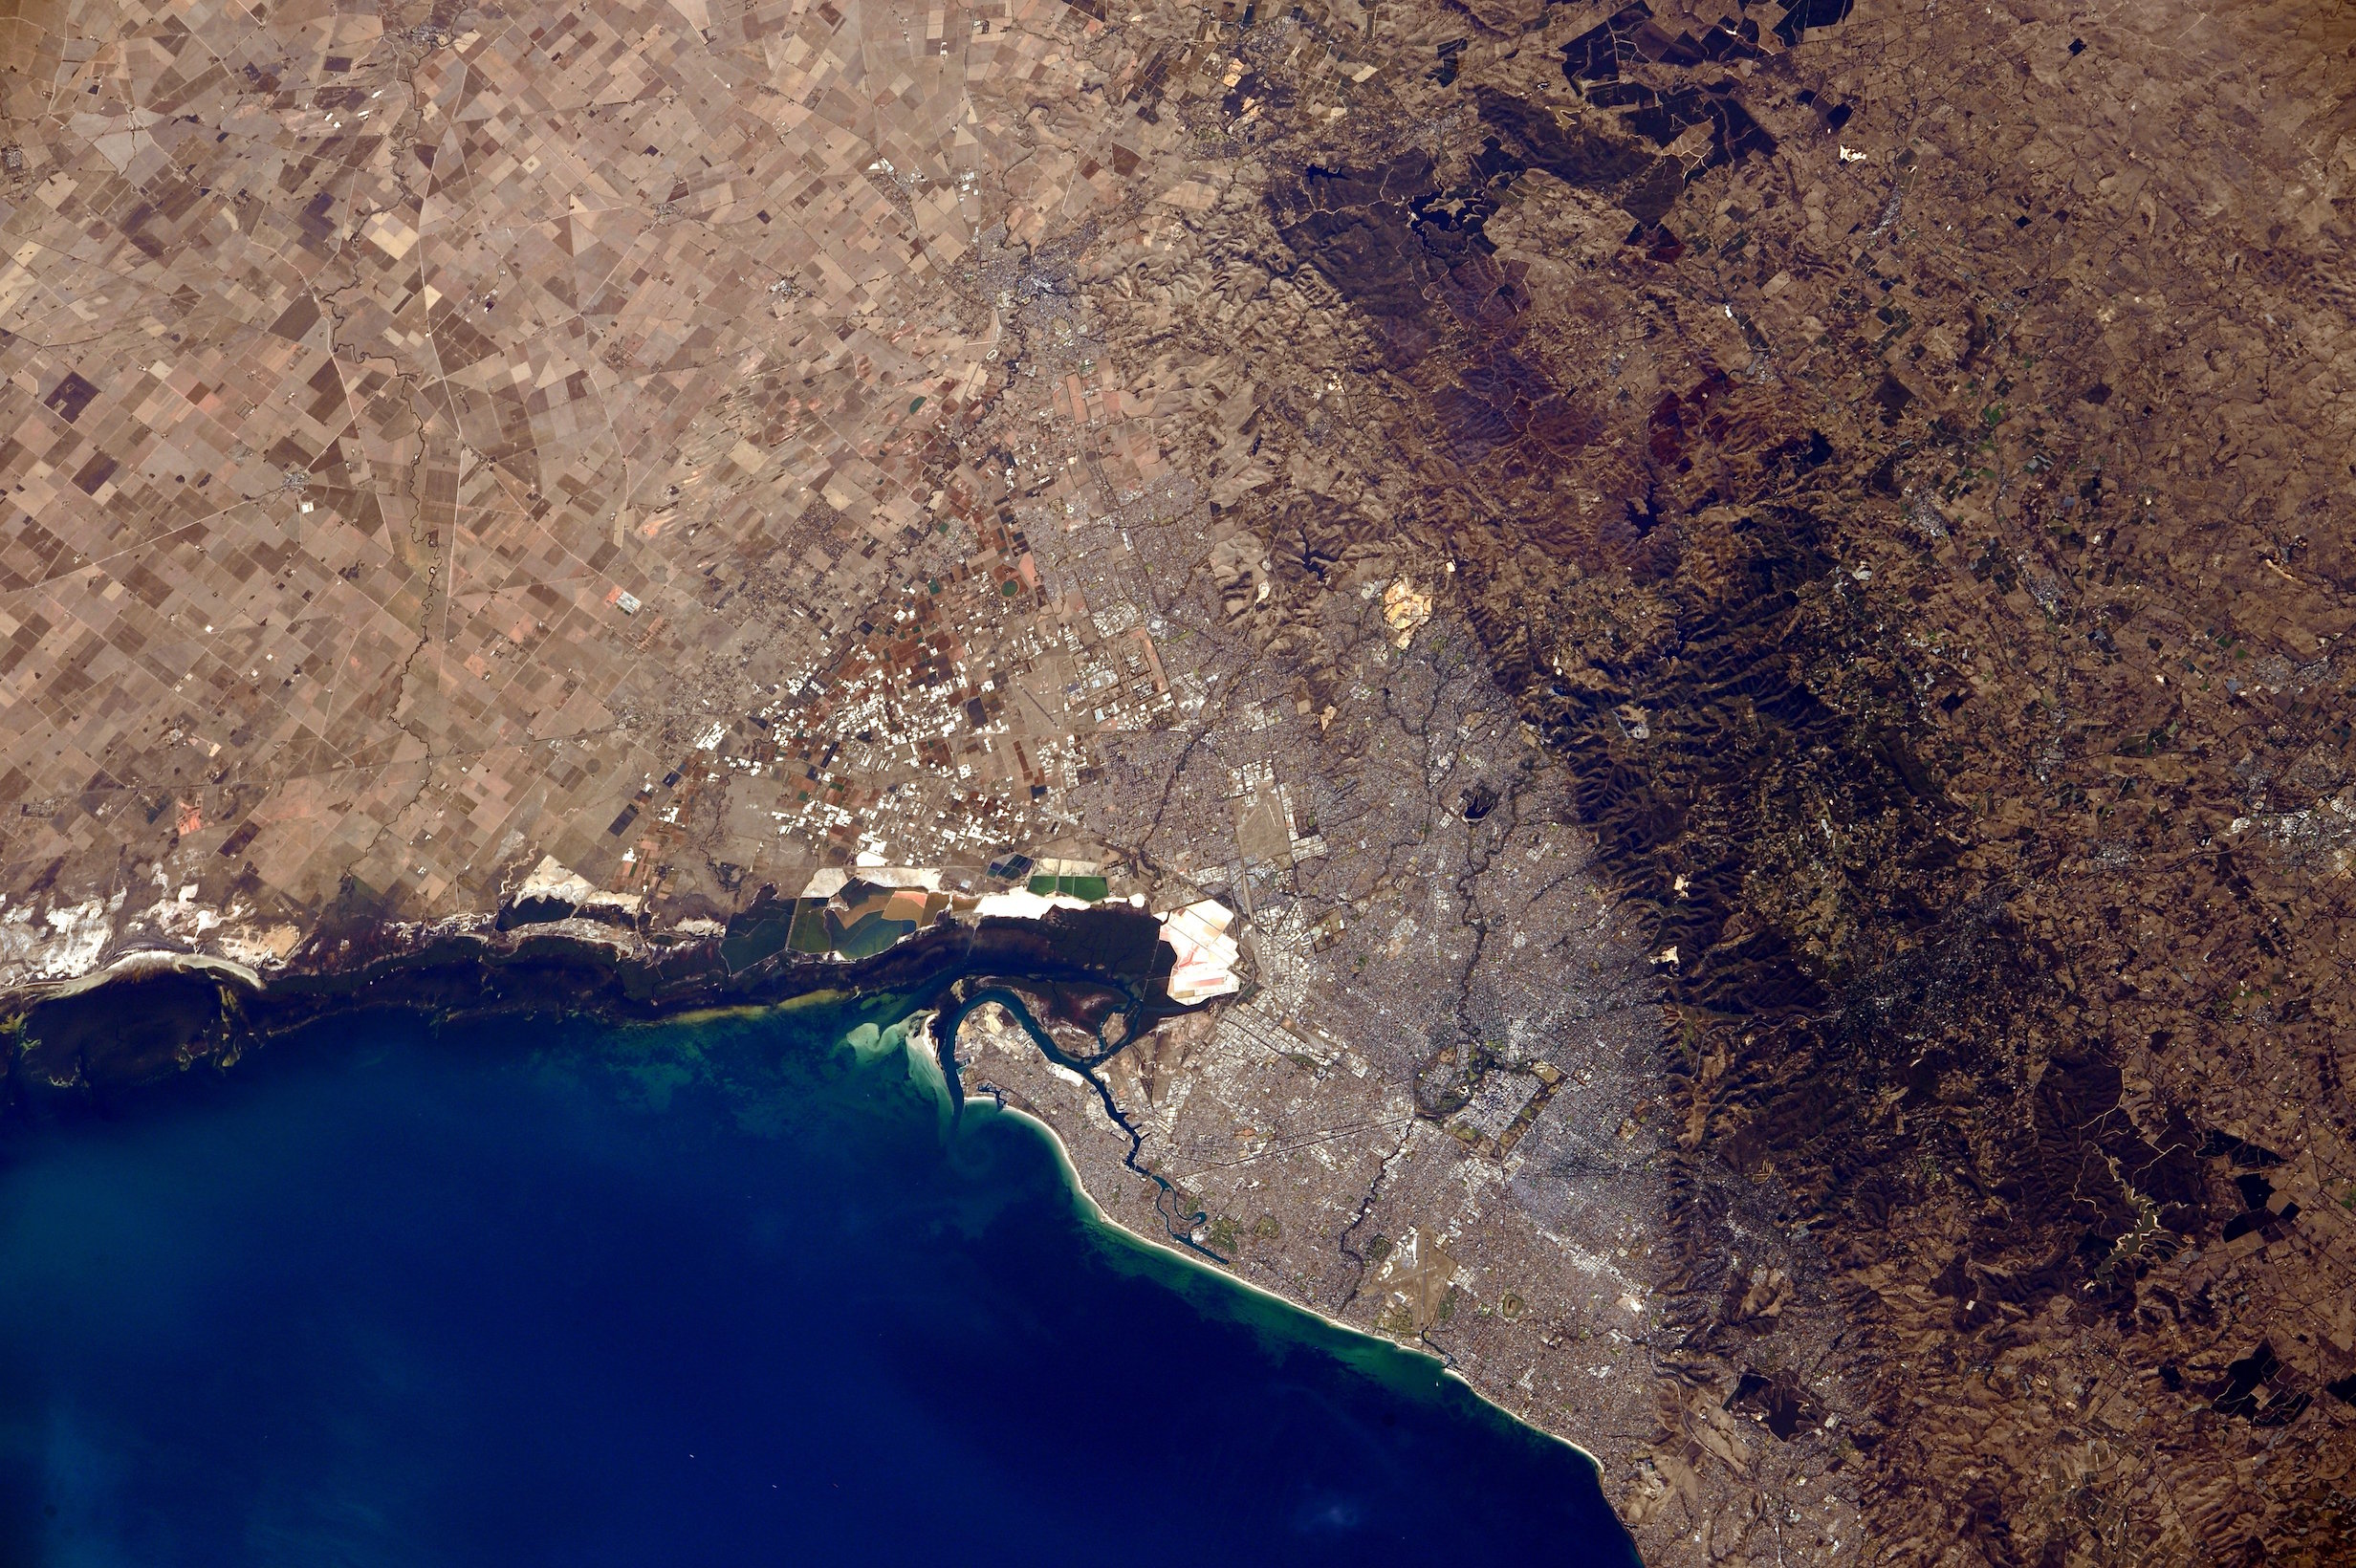 Today's Image of the Day comes thanks to the NASA Earth Observatory and features a look at Adelaide, Australia from the International Space Station.